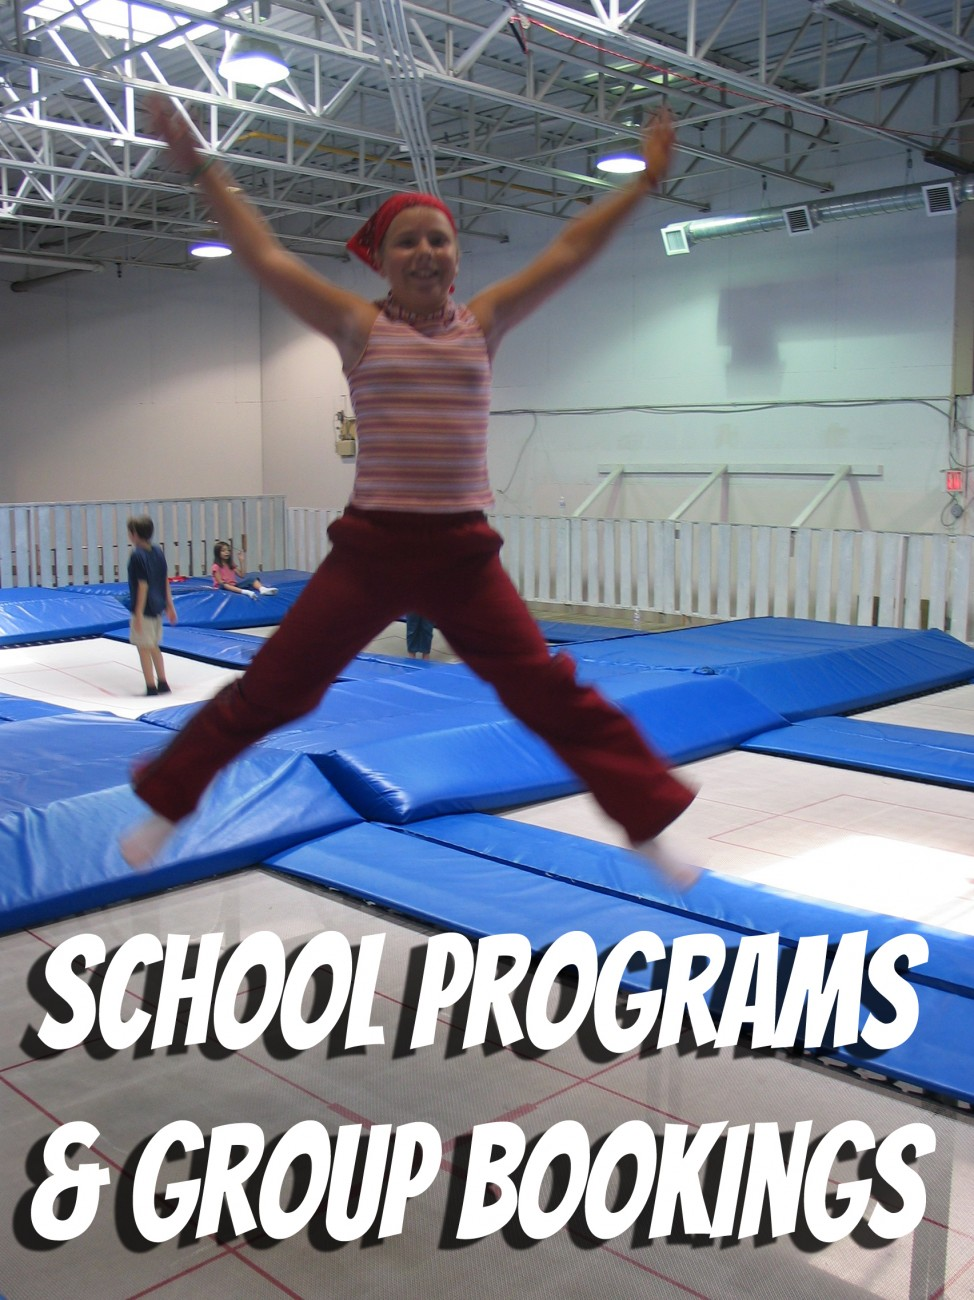 School Programs at Airborne Trampoline